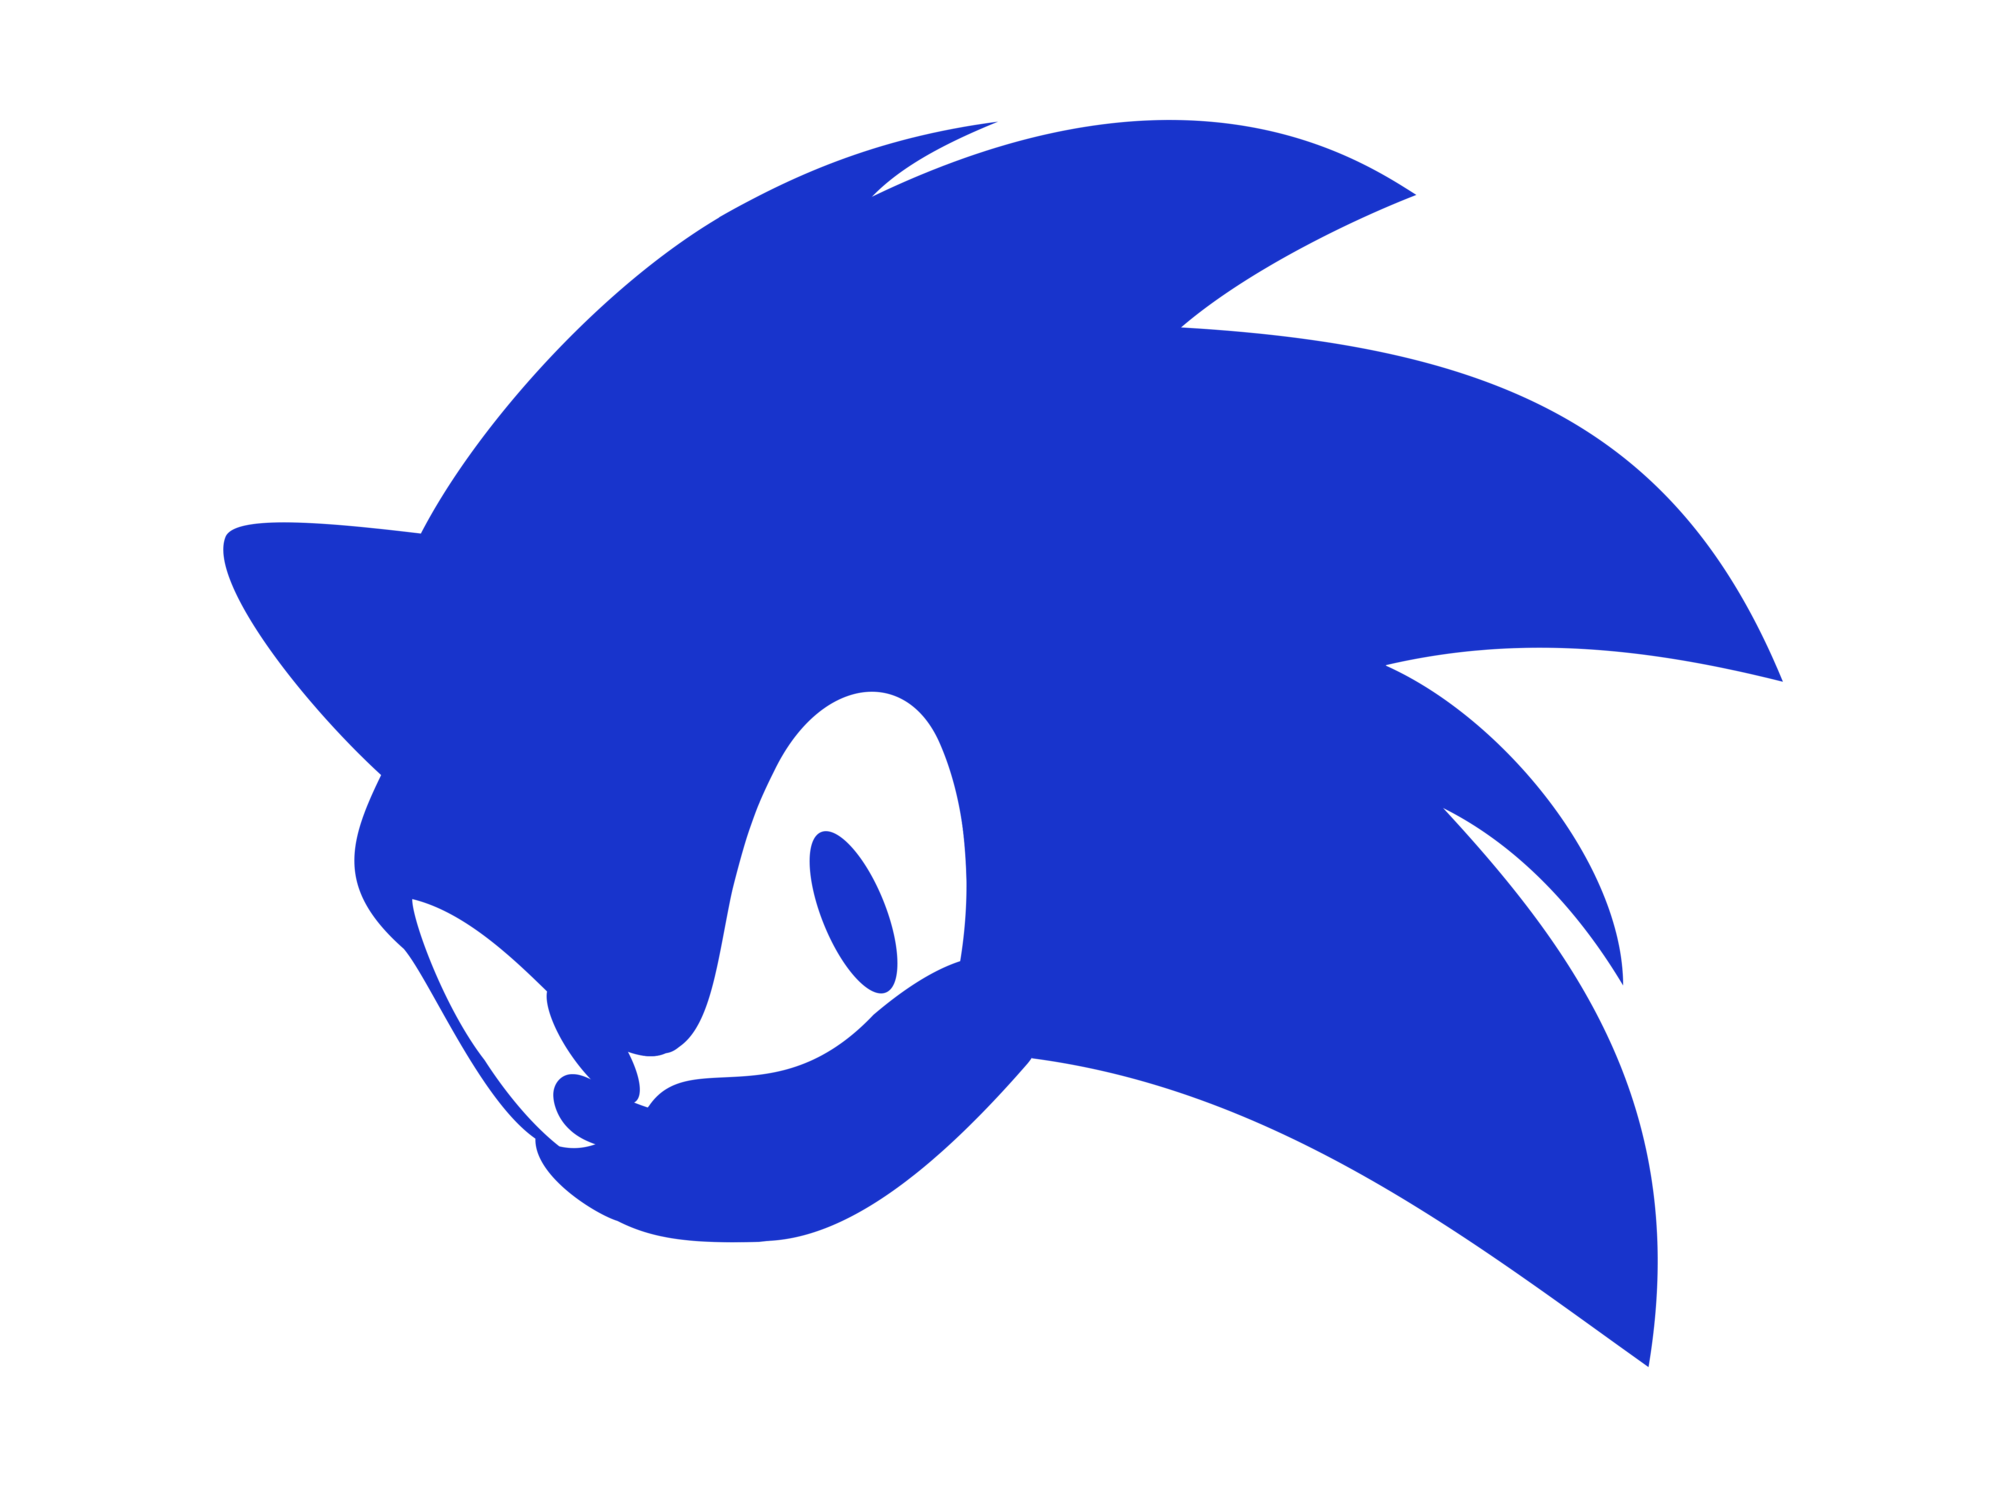 how to make a sonic logo